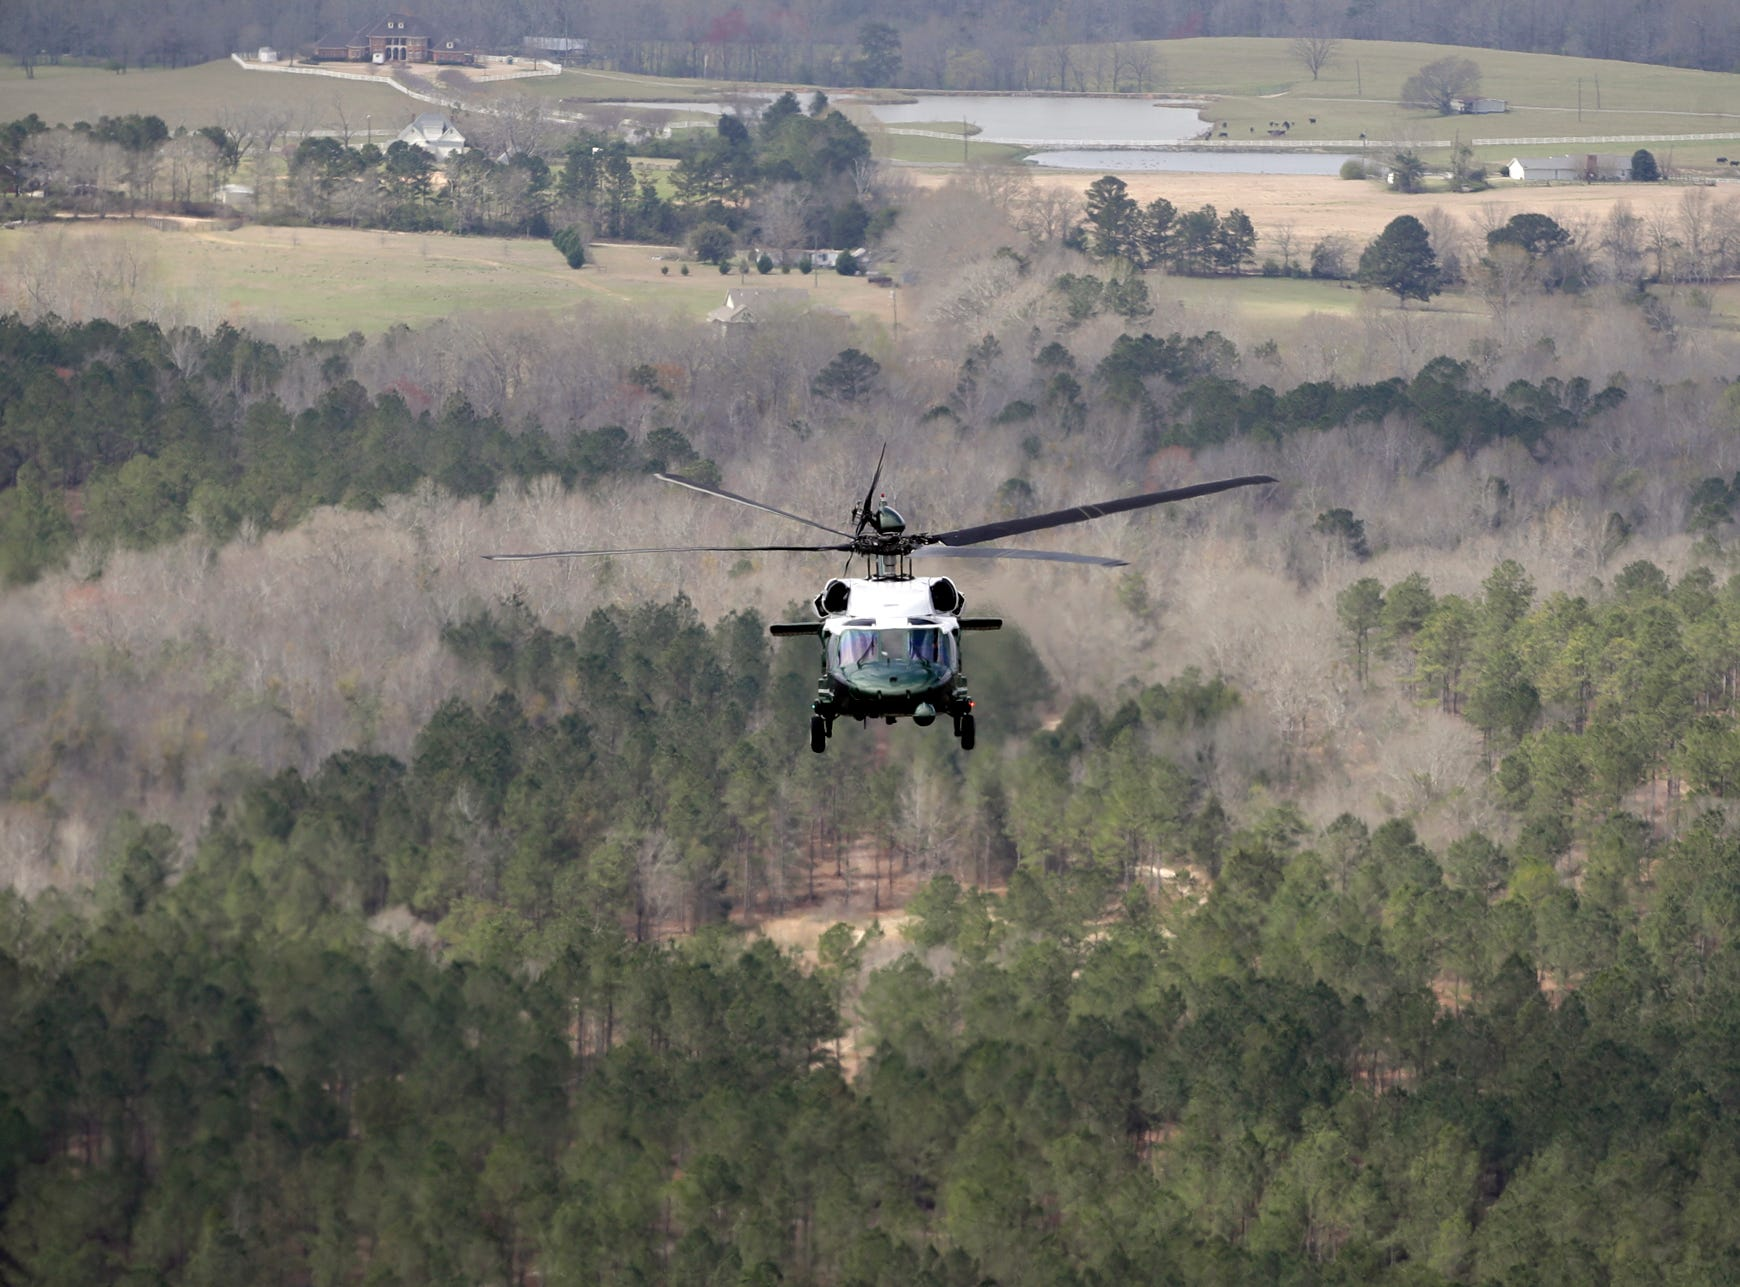 Marine One, with President Donald Trump onboard, flies near damaged areas while en route to Auburn, Ala., Friday, March 8, 2019.